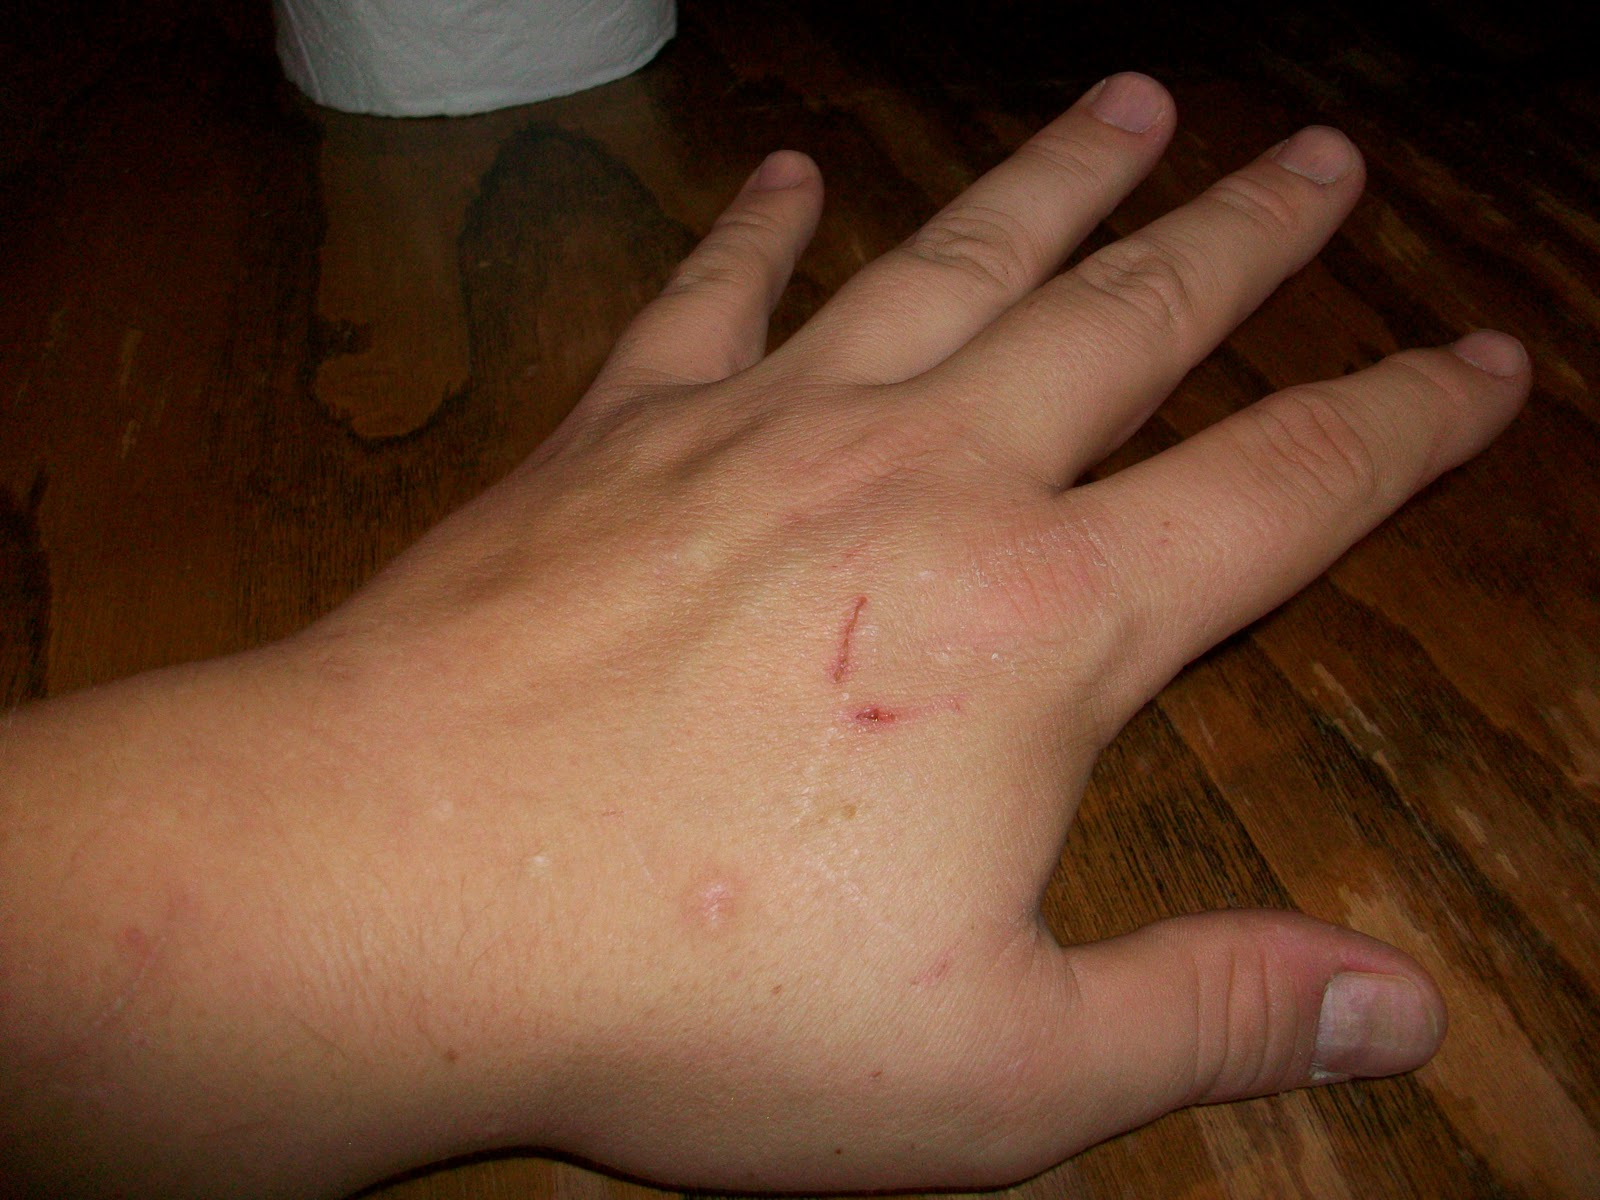 The scars and scratches are real and honestly earned from working on Halloween props.